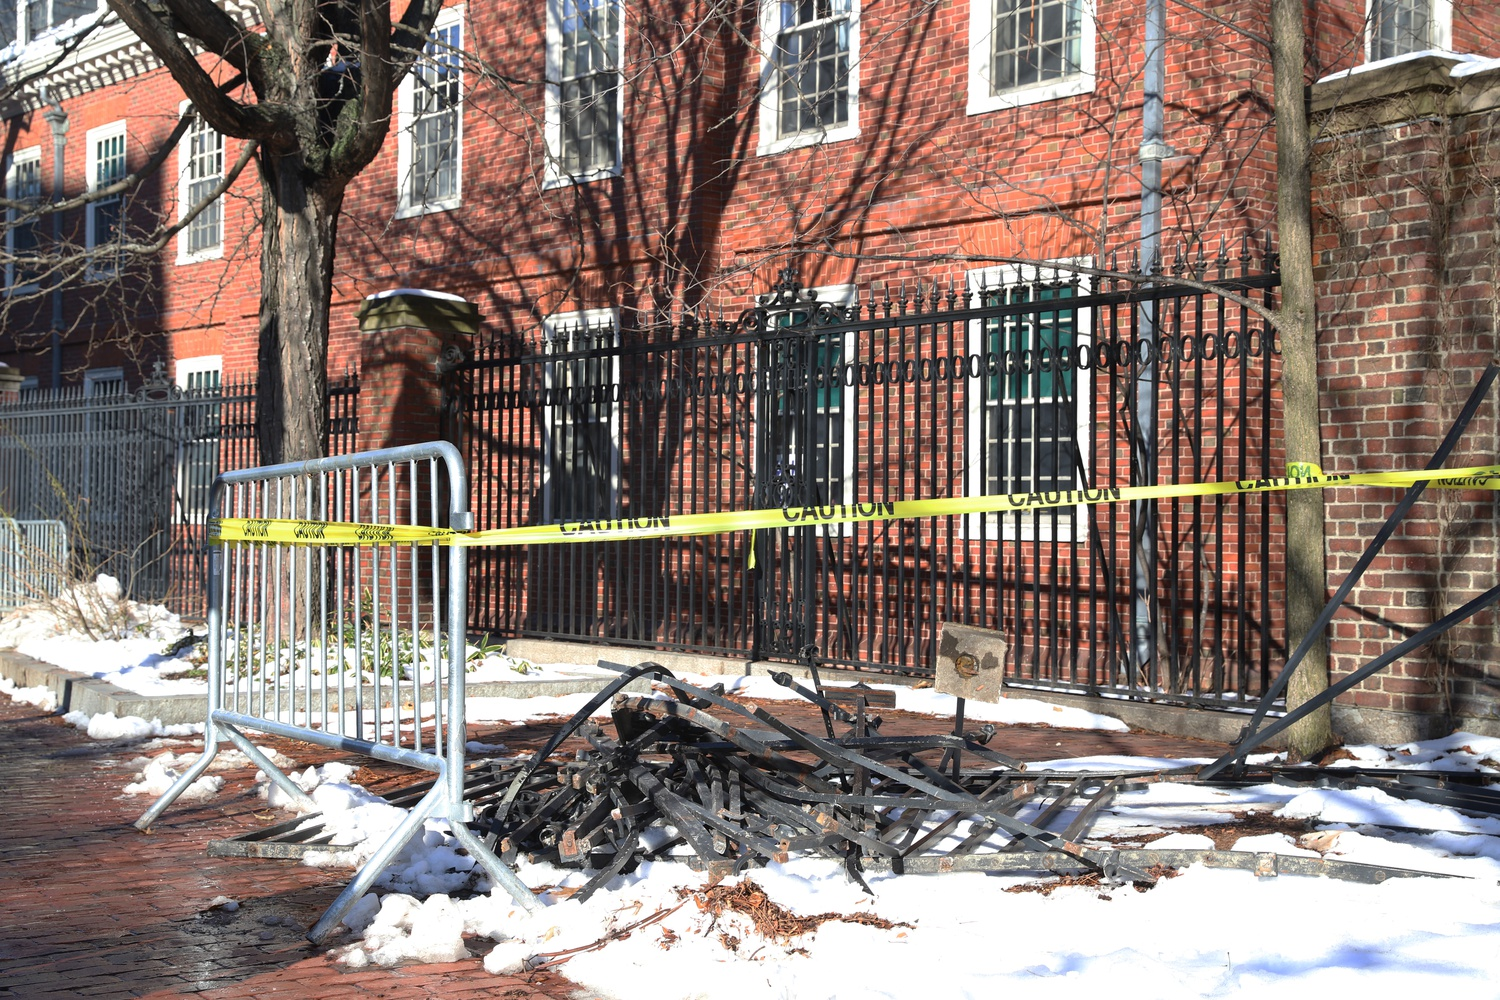 A driver died and a passenger received serious injuries after their car crashed through a fence on Mass. Ave. near Wigglesworth Hall.